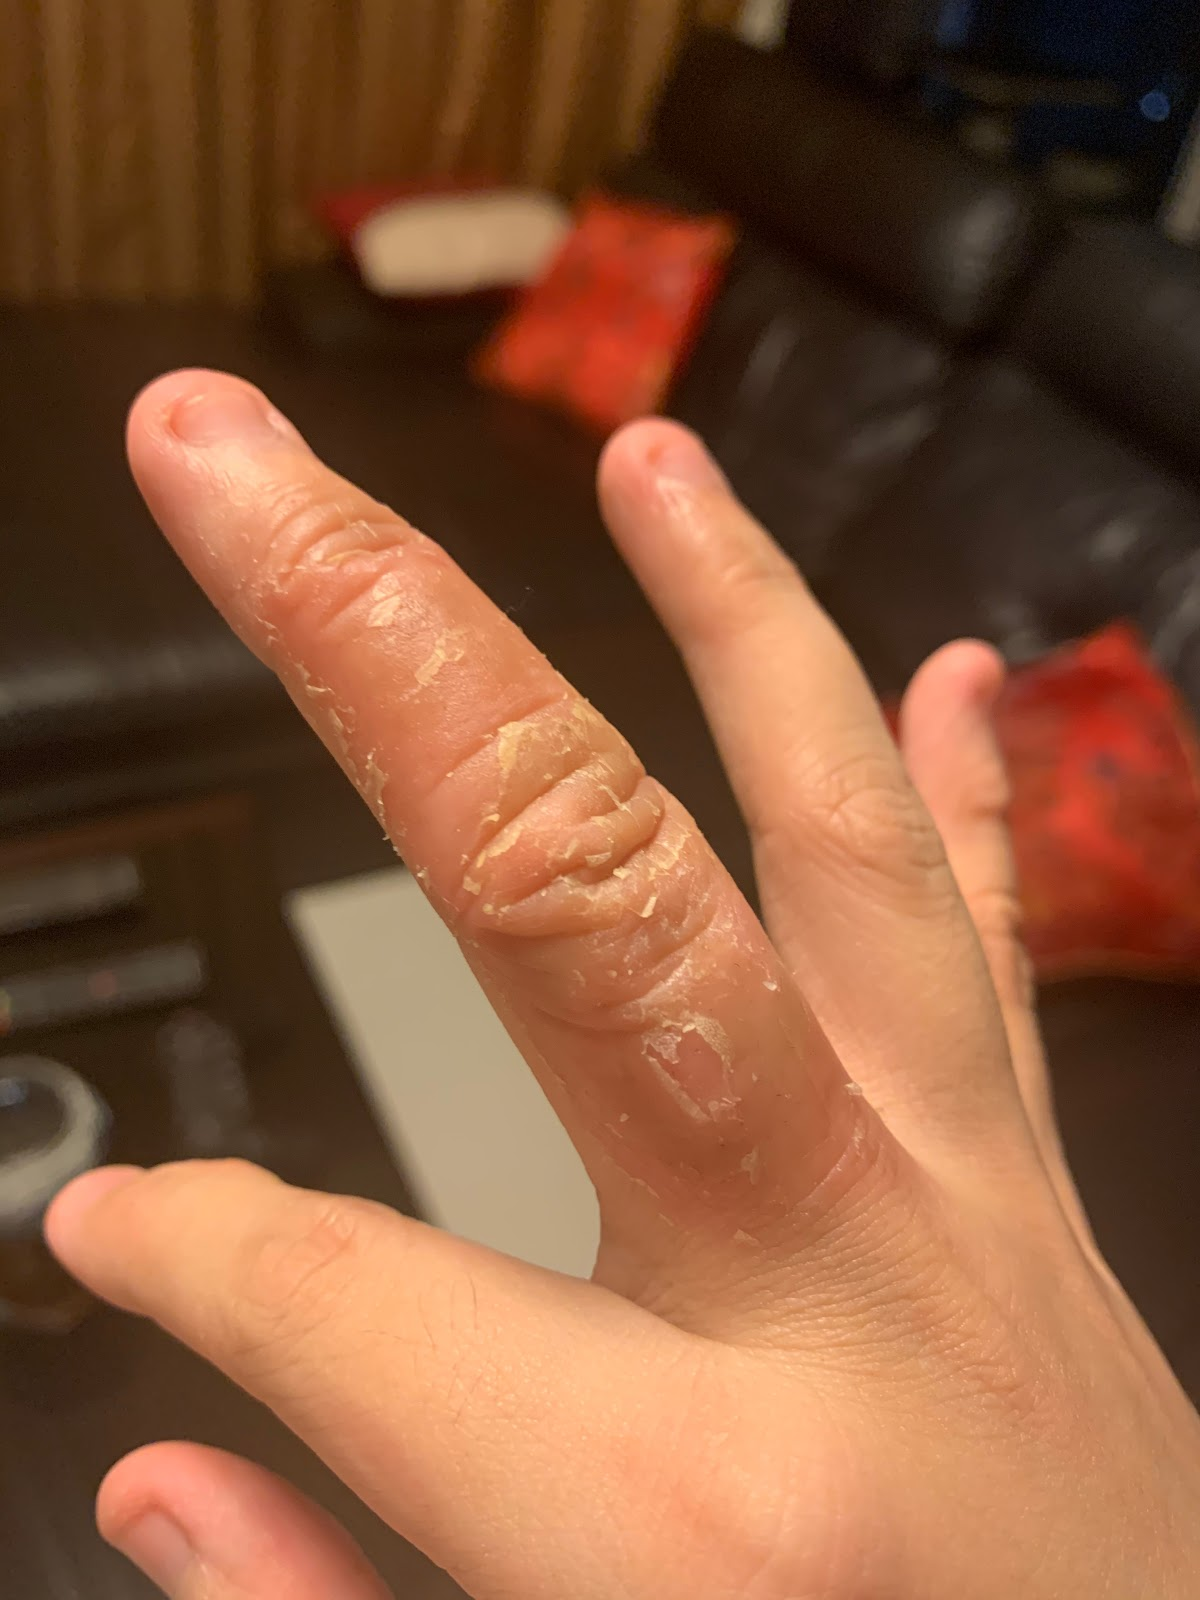 Red, inflamed, peeling skin due to eczema on fingers